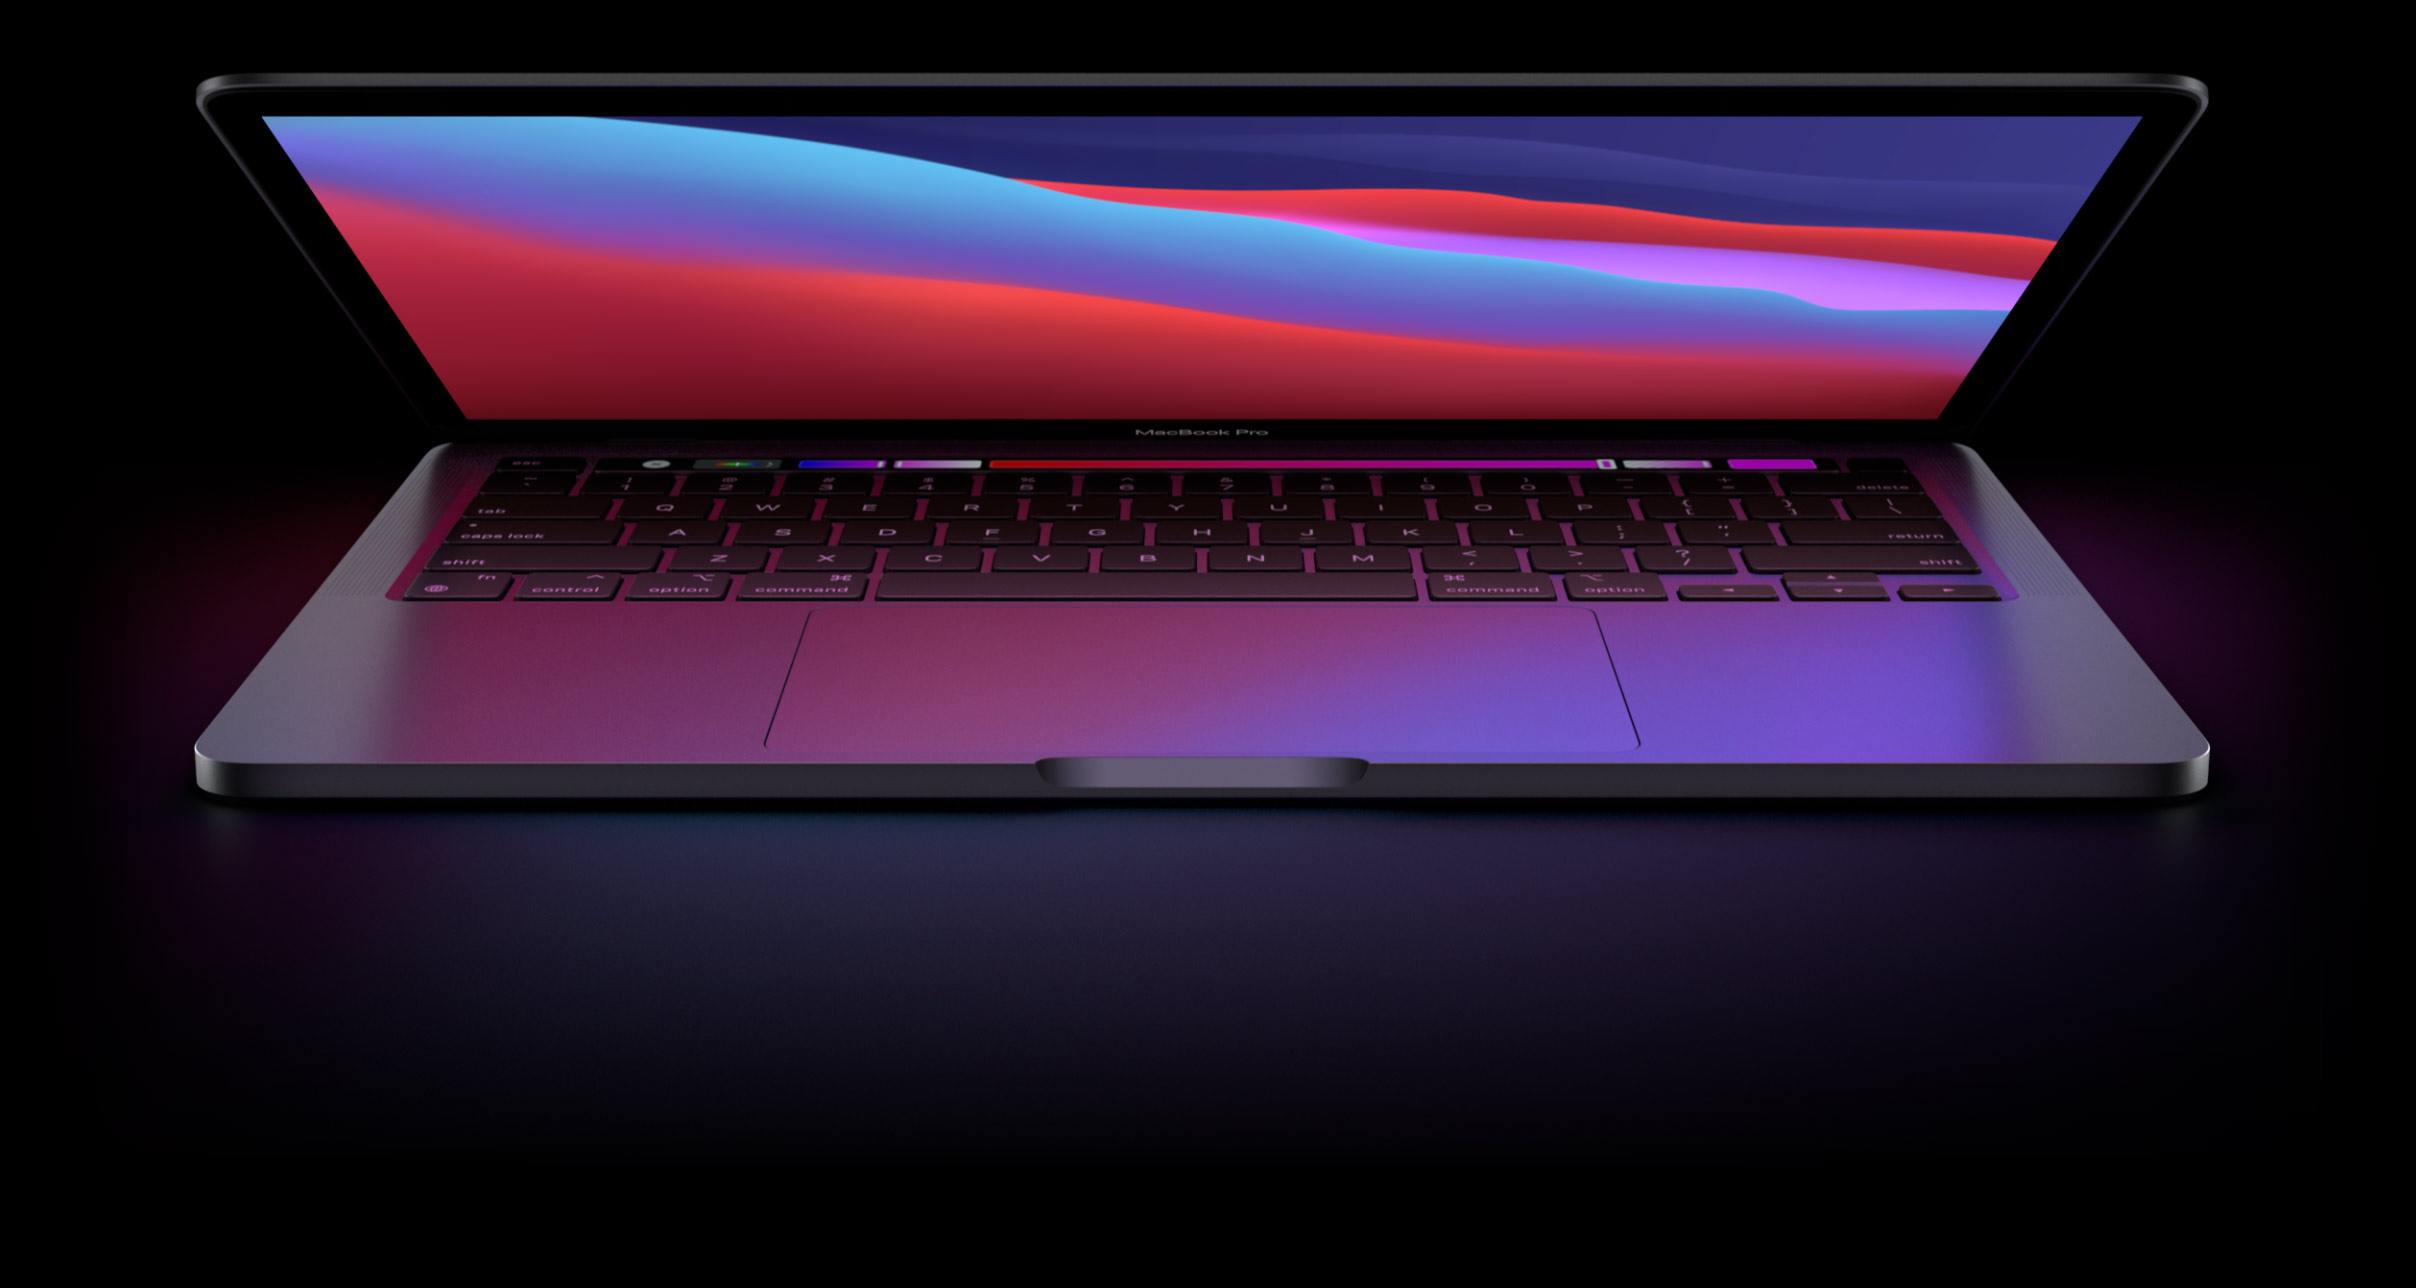 #Apple 13-inch MacBook Pro: Apple M1 chip with 8-core CPU and 8-core GPU, 512GB SSD - Silver